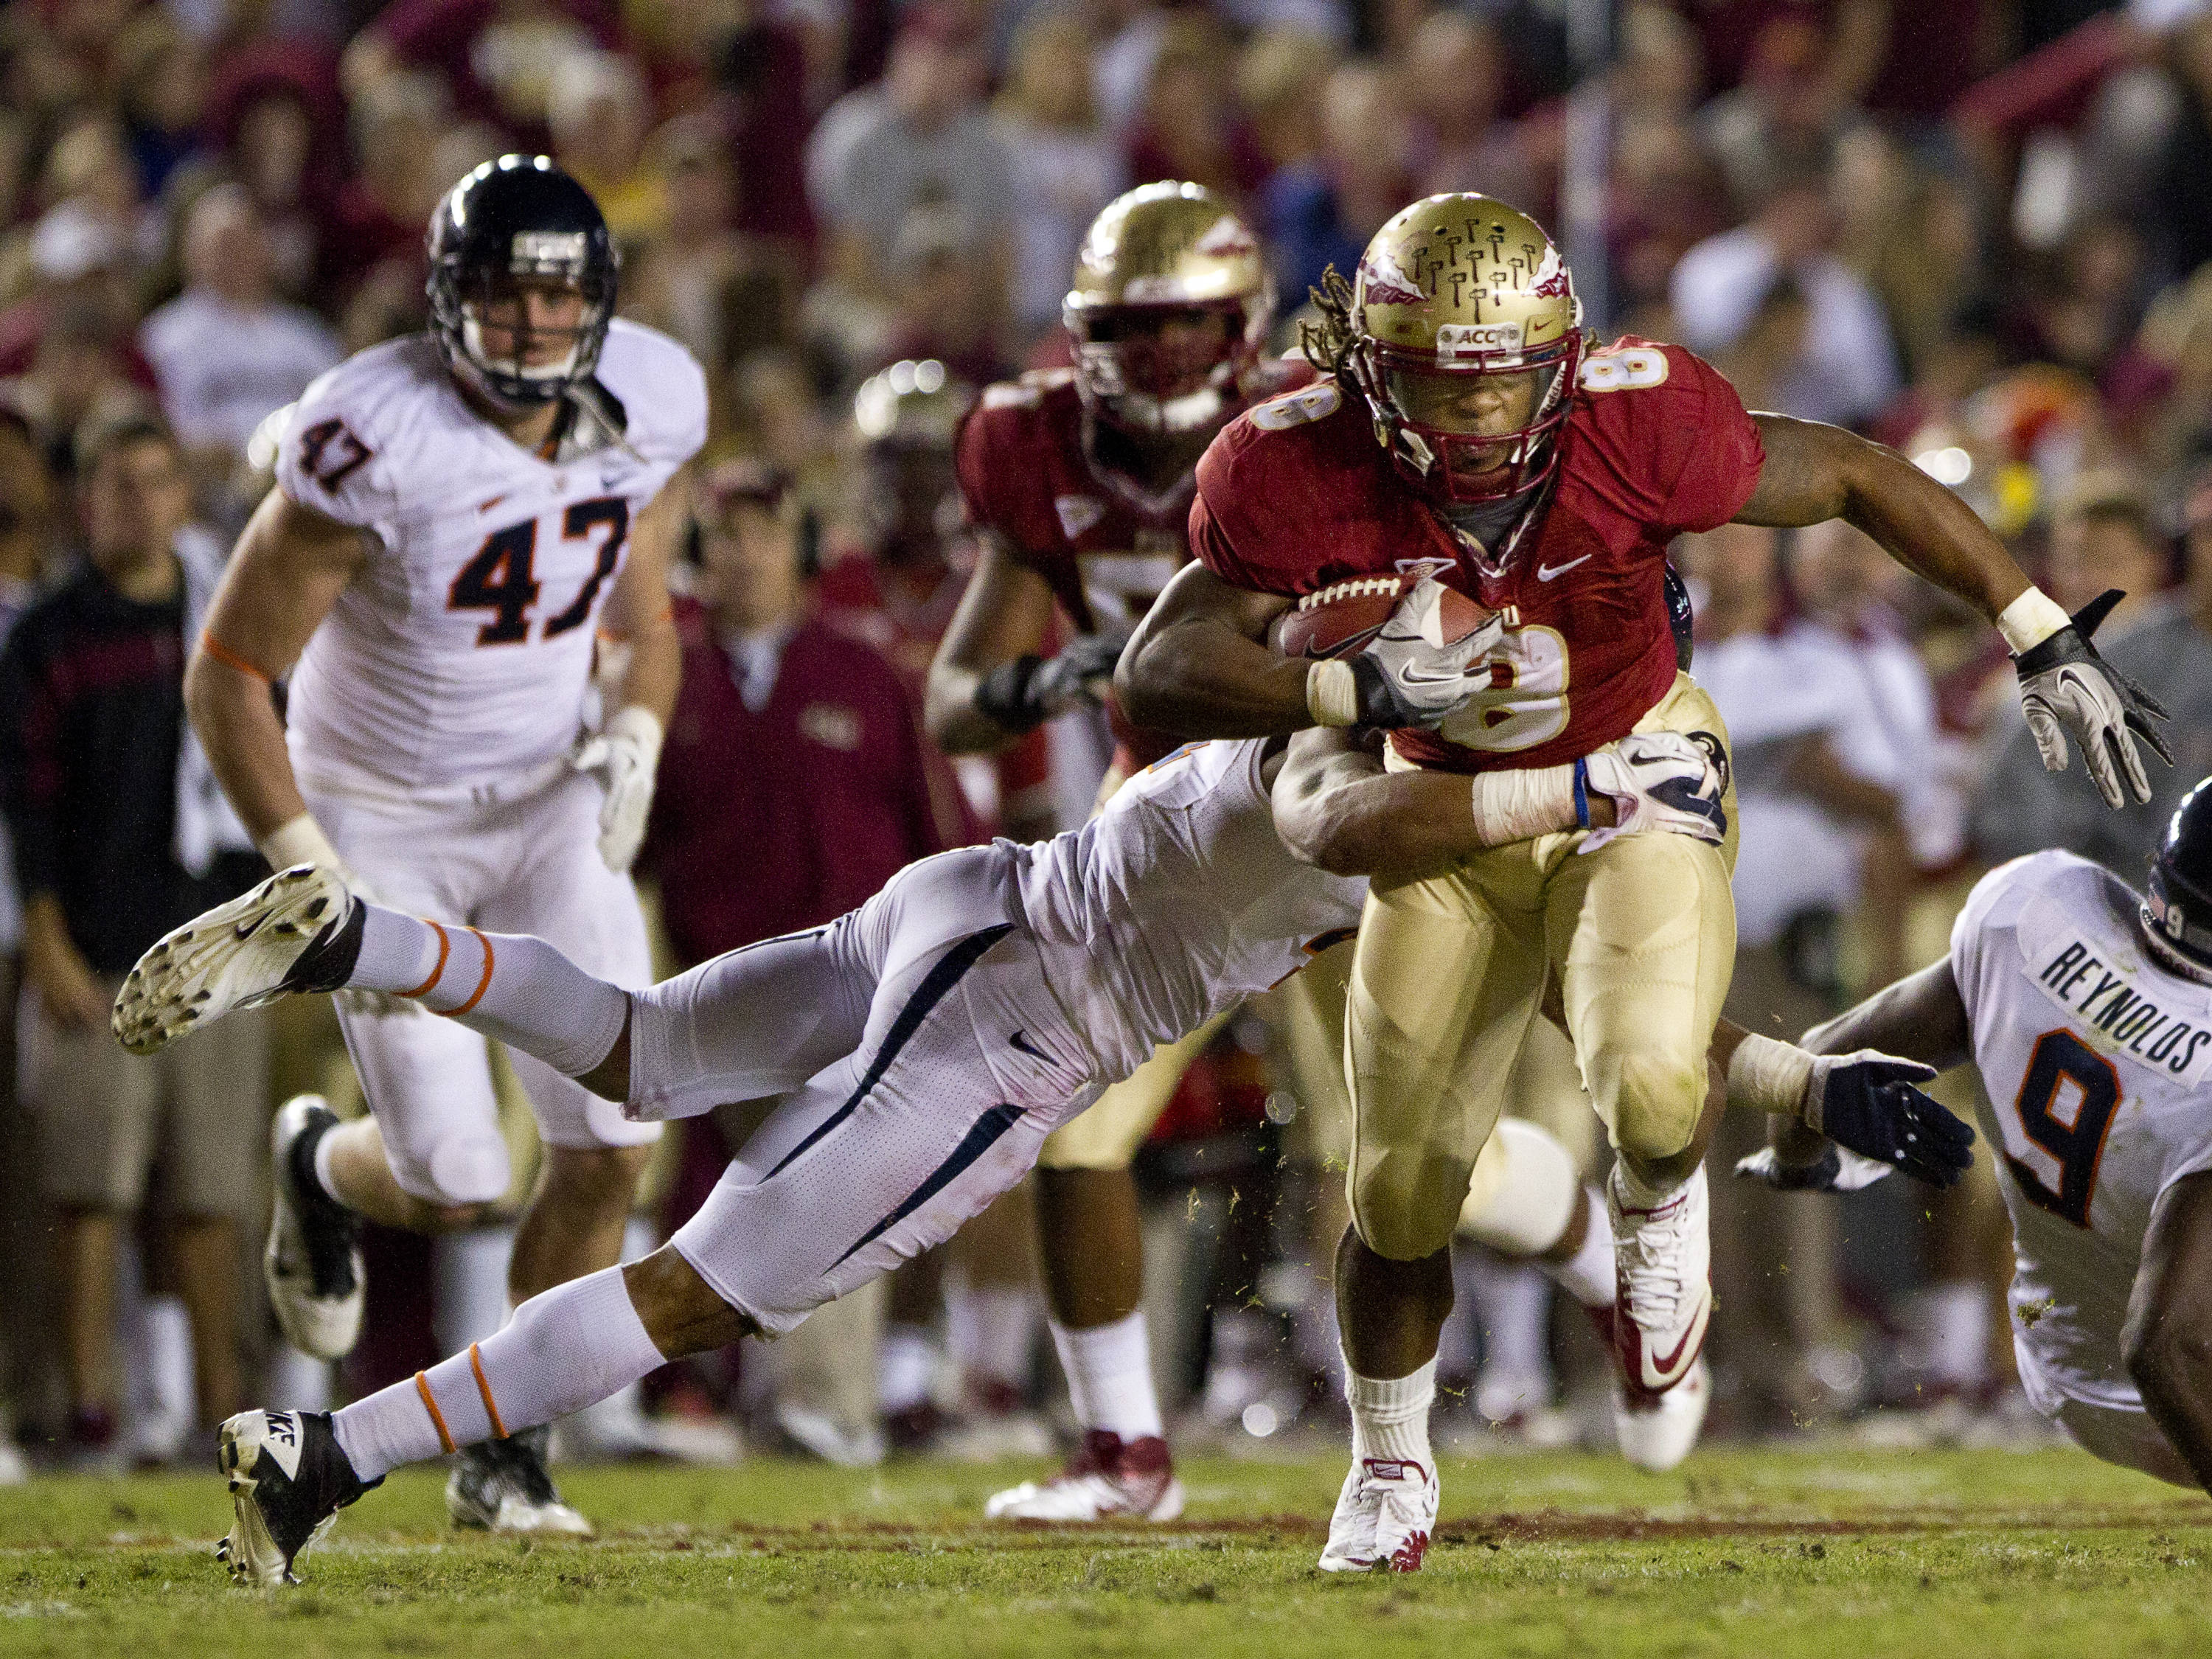 Timmy Jernigan (8) takes a hit while running the ball during the game against Virginia on November 19, 2011.